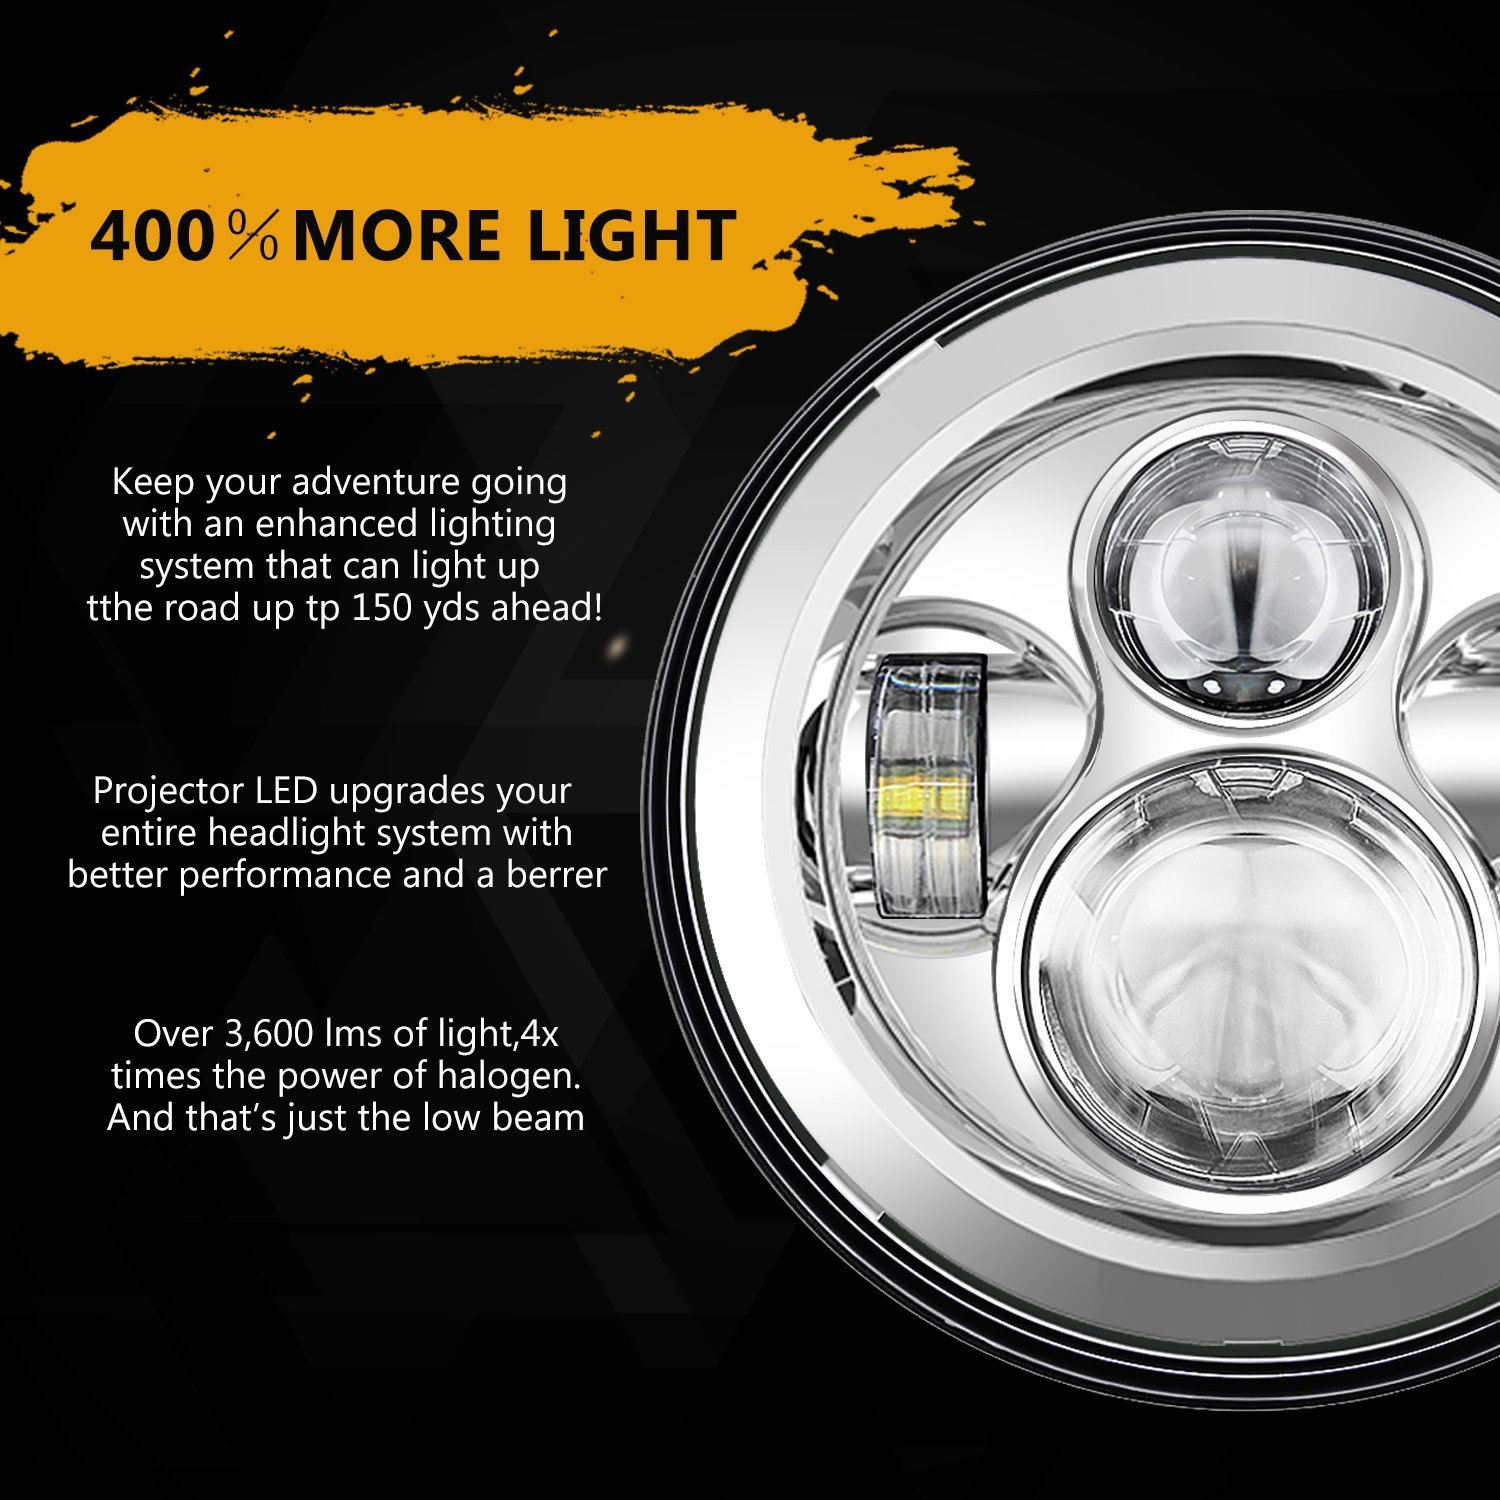 QXXZ 7 Inch Chrome Harley Daymaker LED Headlight 2X 4-1//2 Fog Light Passing Lamps For Harley Davidson Motorcycle